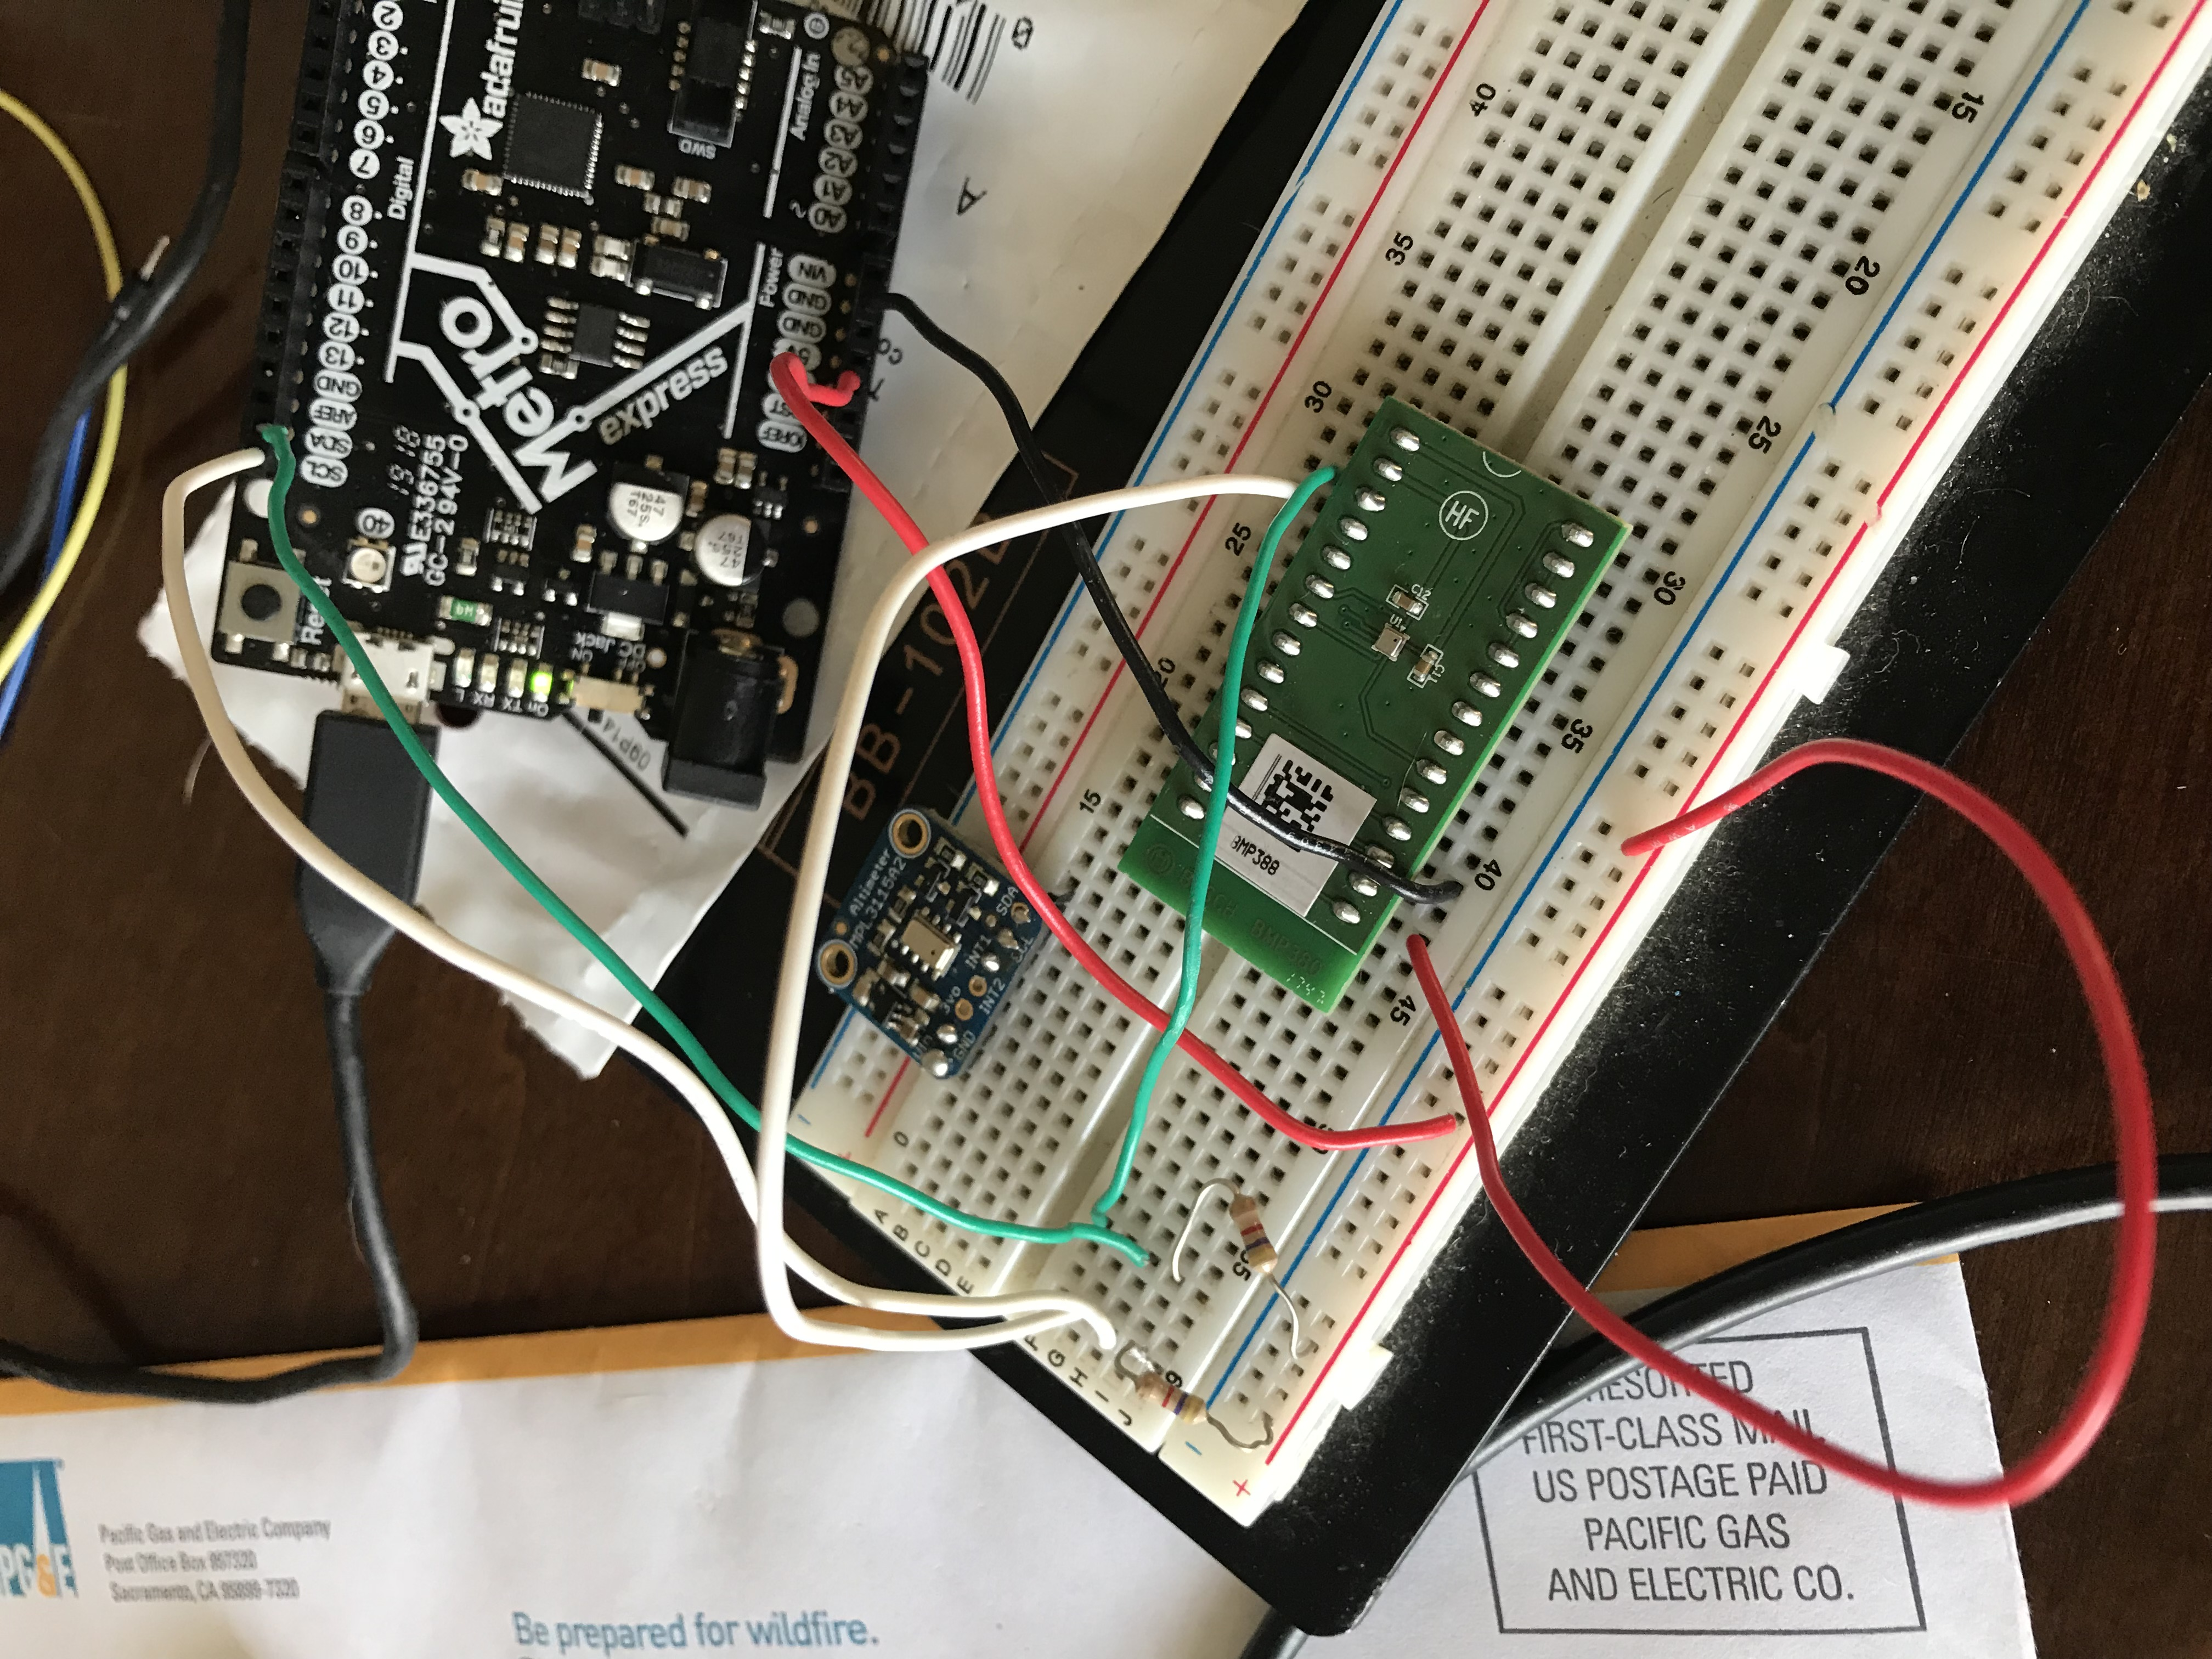 I2c Wiring Of Shuttleboard Issue 1 Boschsensortec 3 Sensor Casey10110 Commented On Jul 20